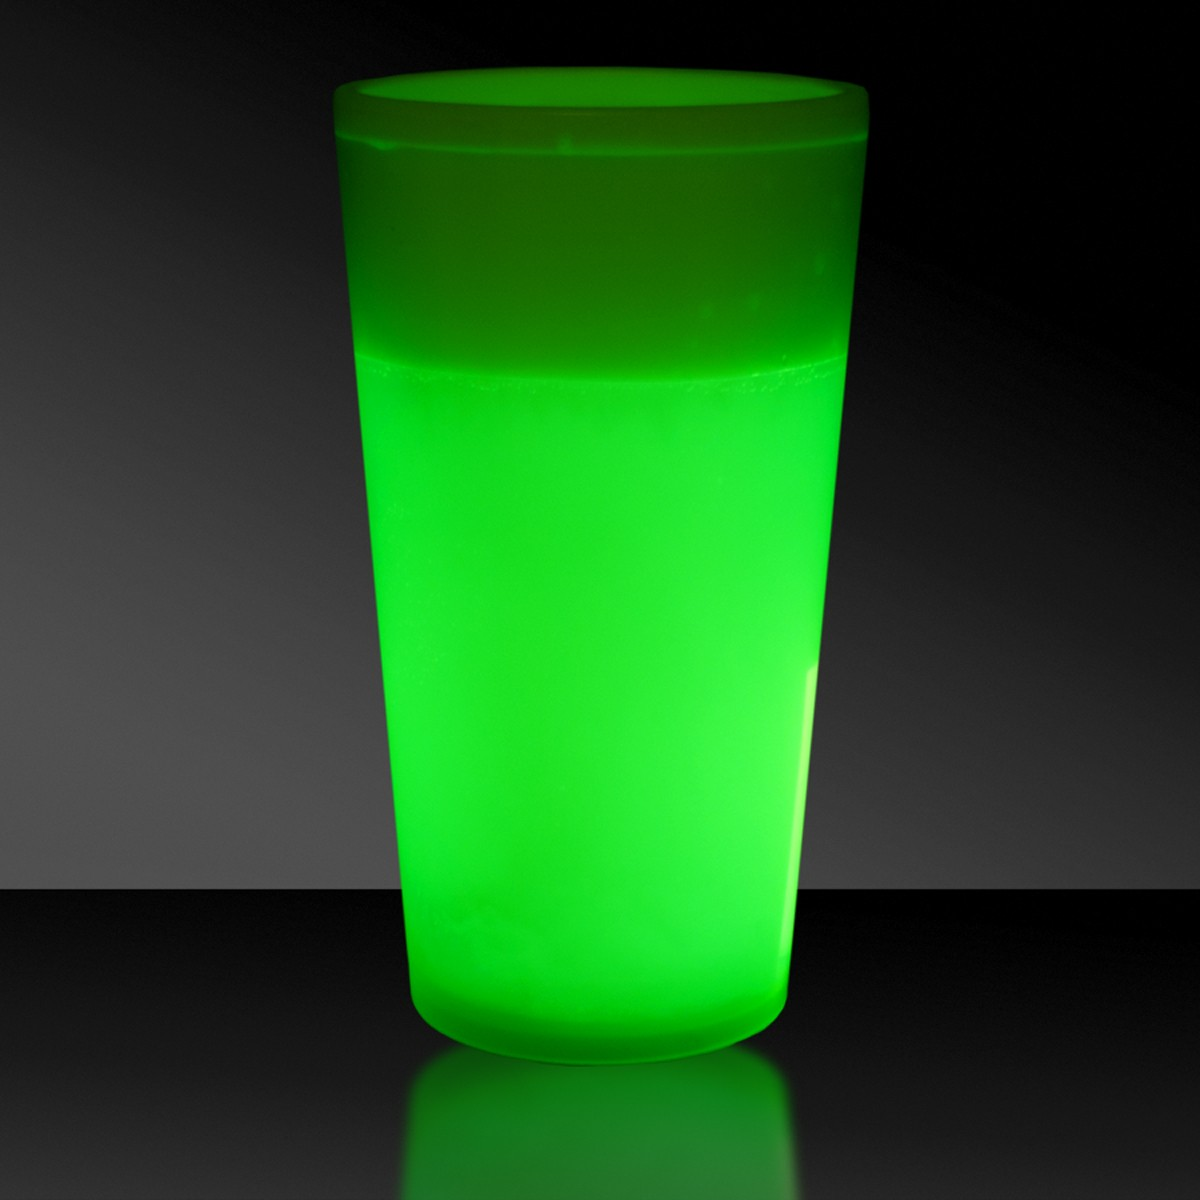 NEW-12 OZ. GREEN GLOW CUP